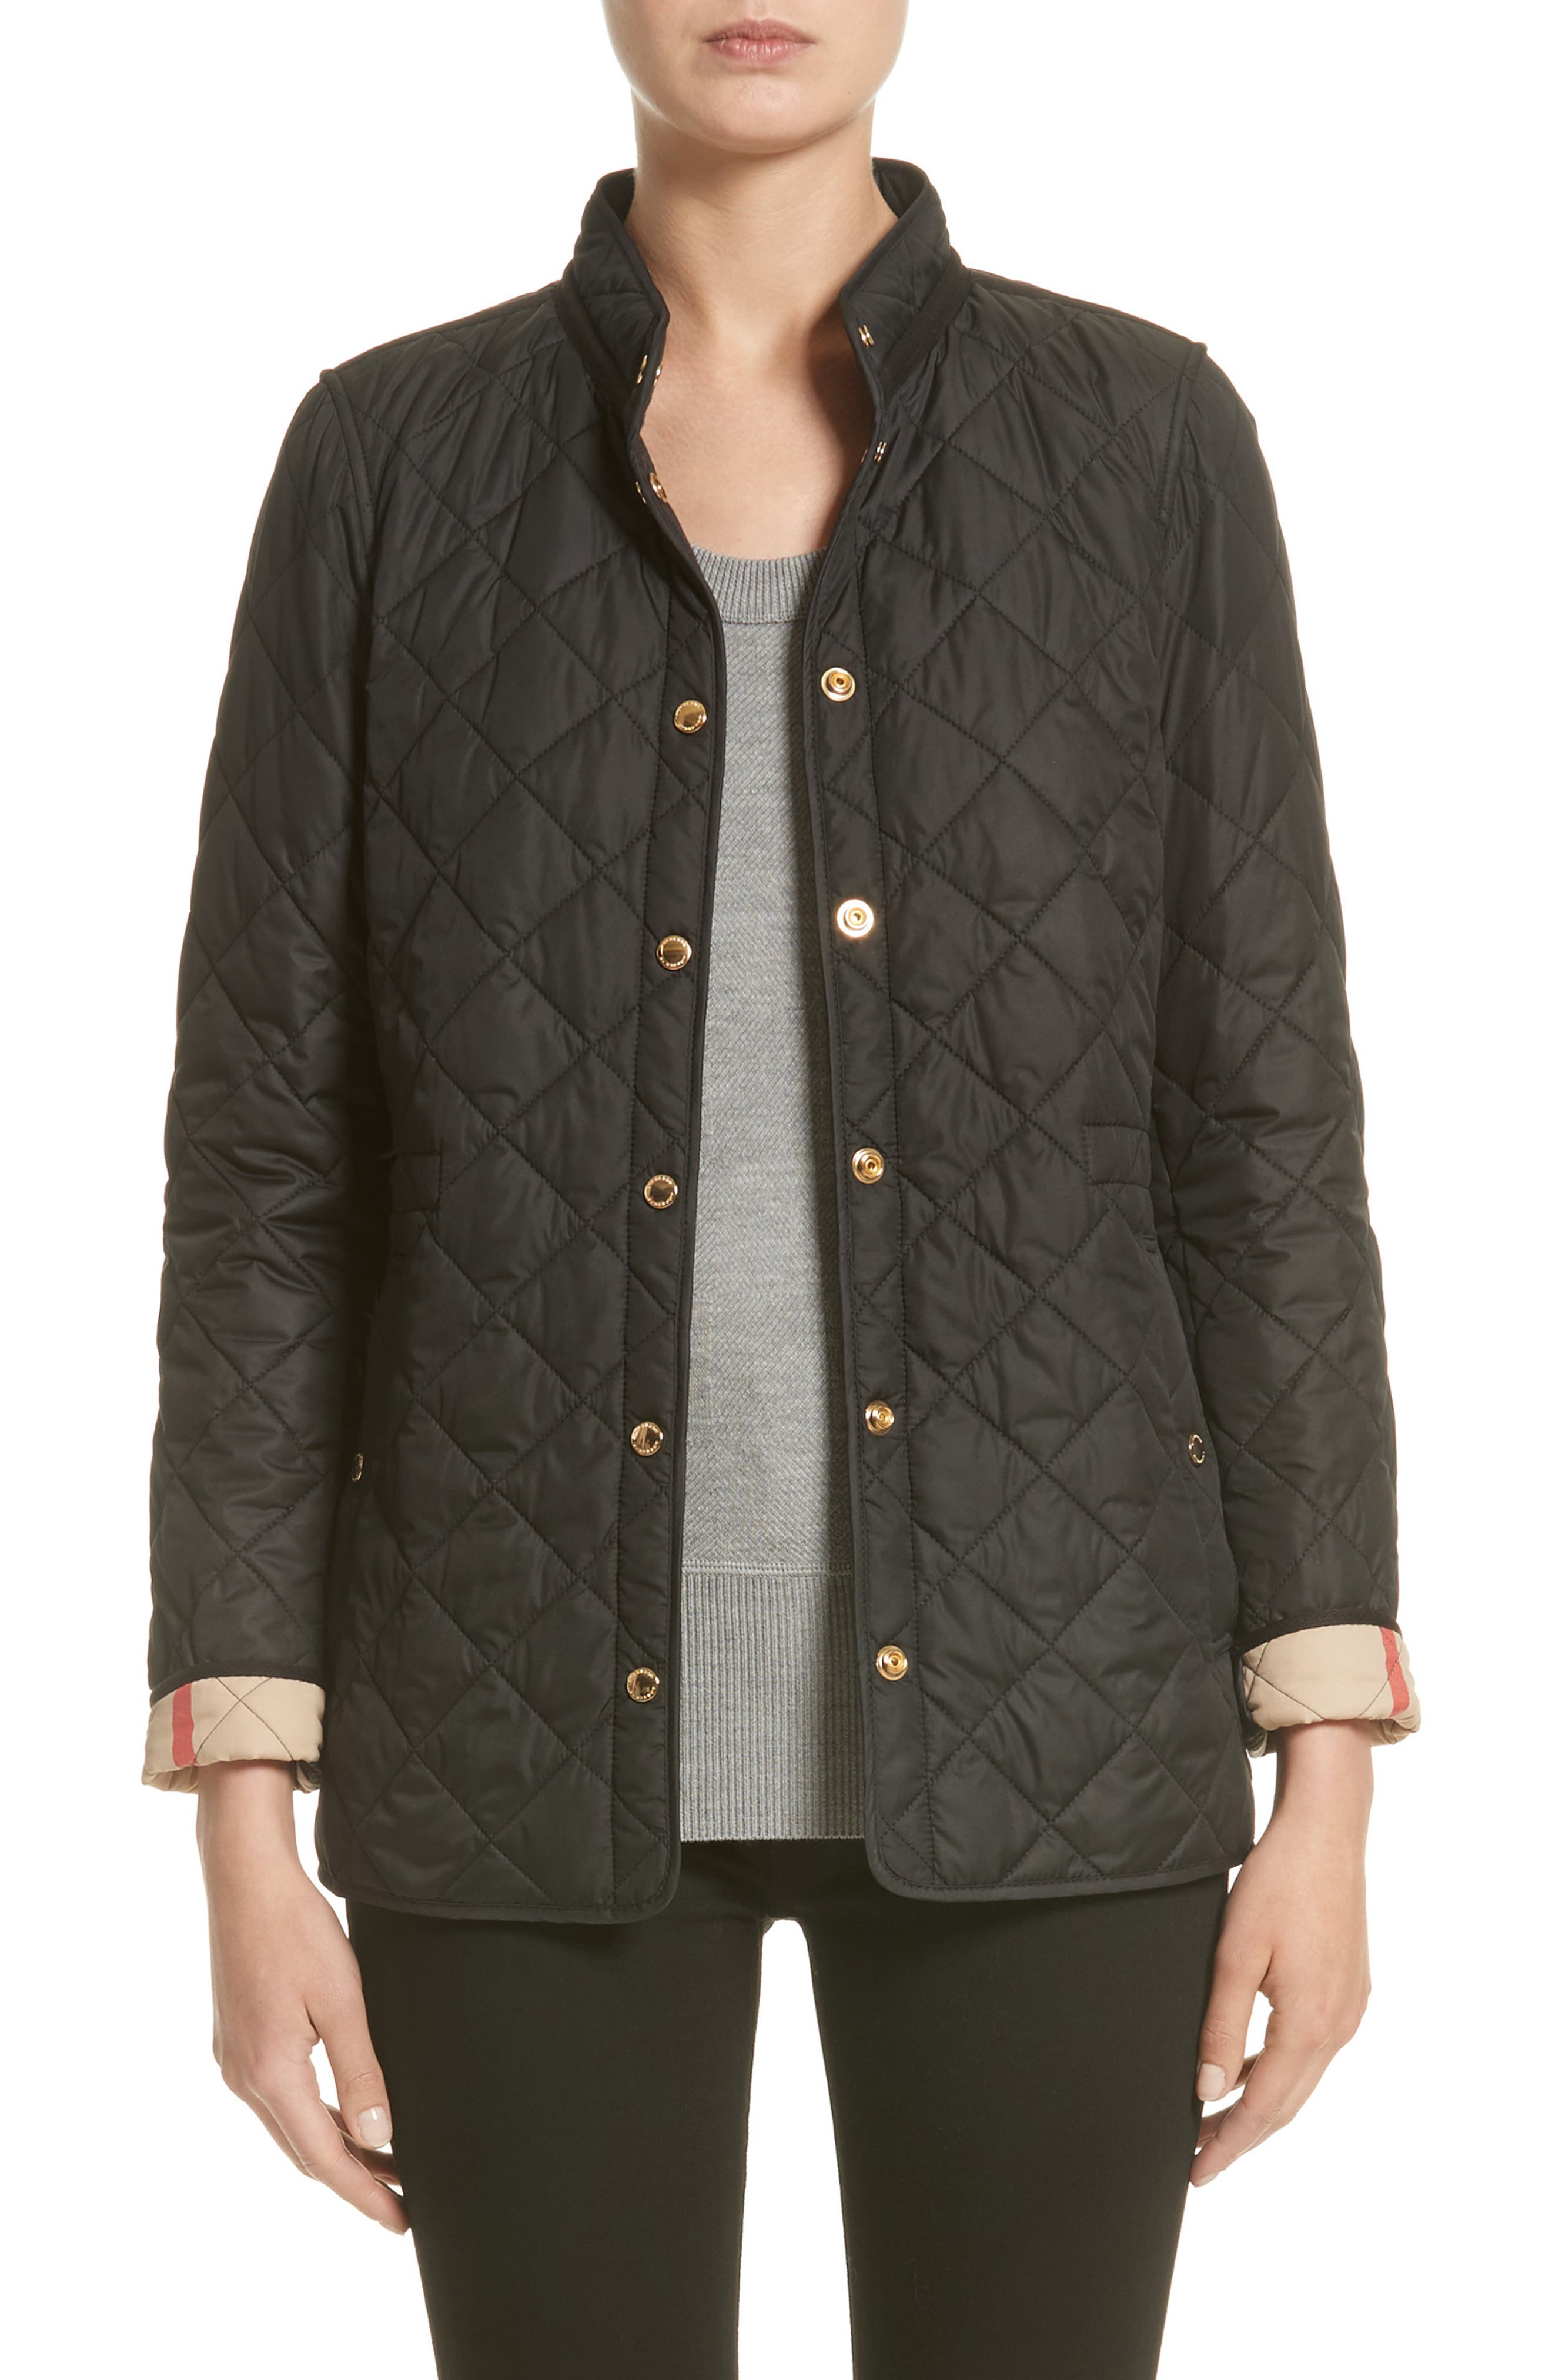 Pensham Quilted Jacket,                         Main,                         color, 001